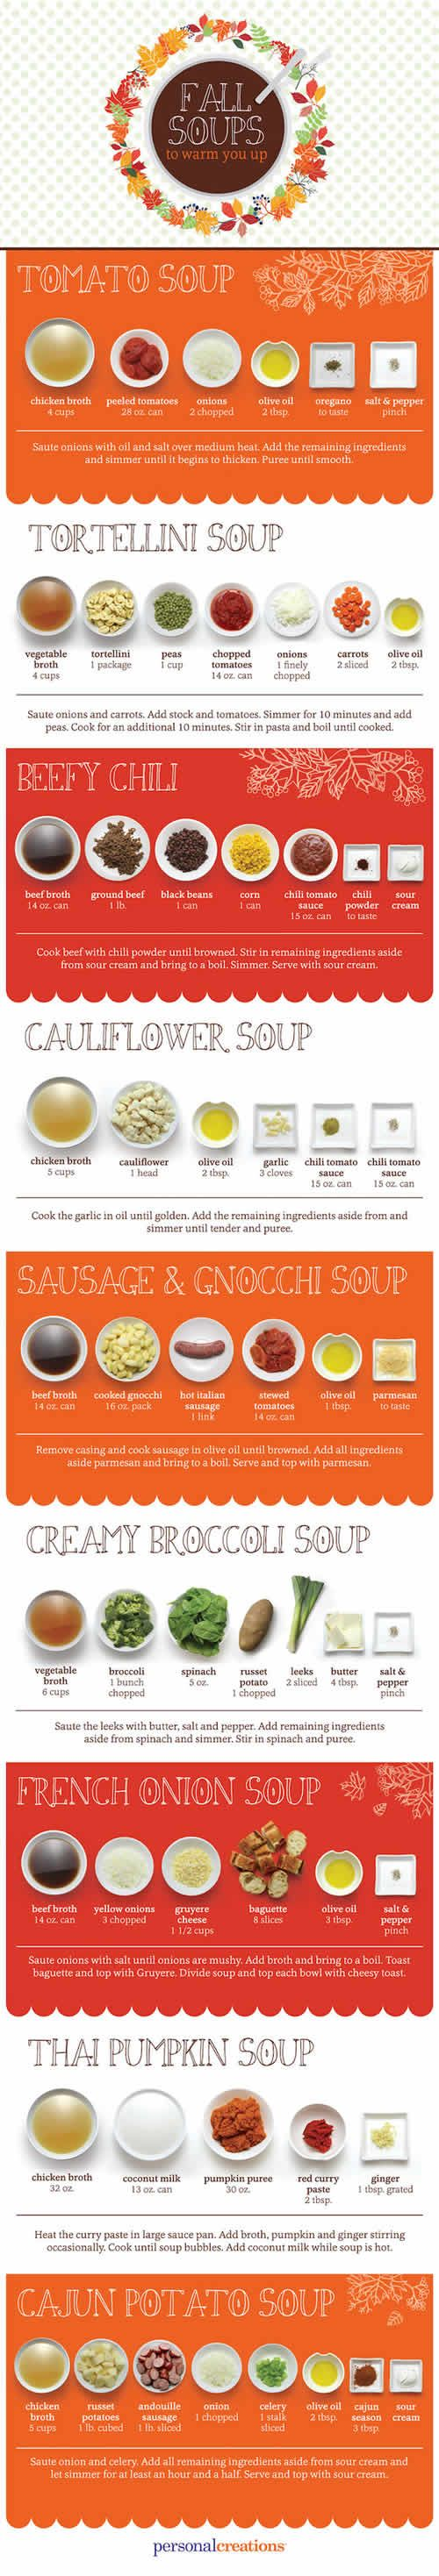 Fall Soup Recipes Infographic